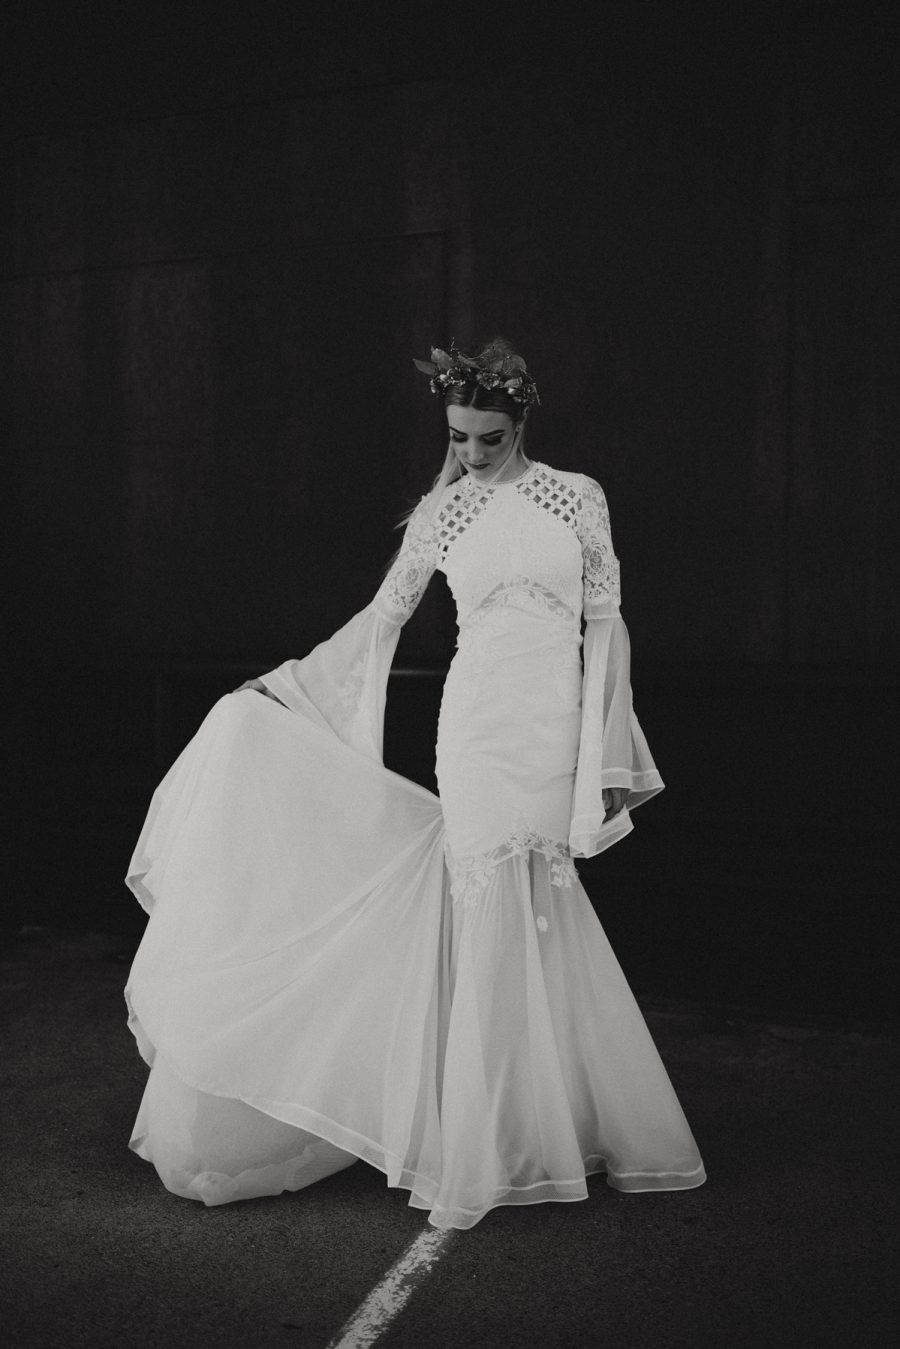 romantic long sleeve lace wedding dress by Judy Copley Couture